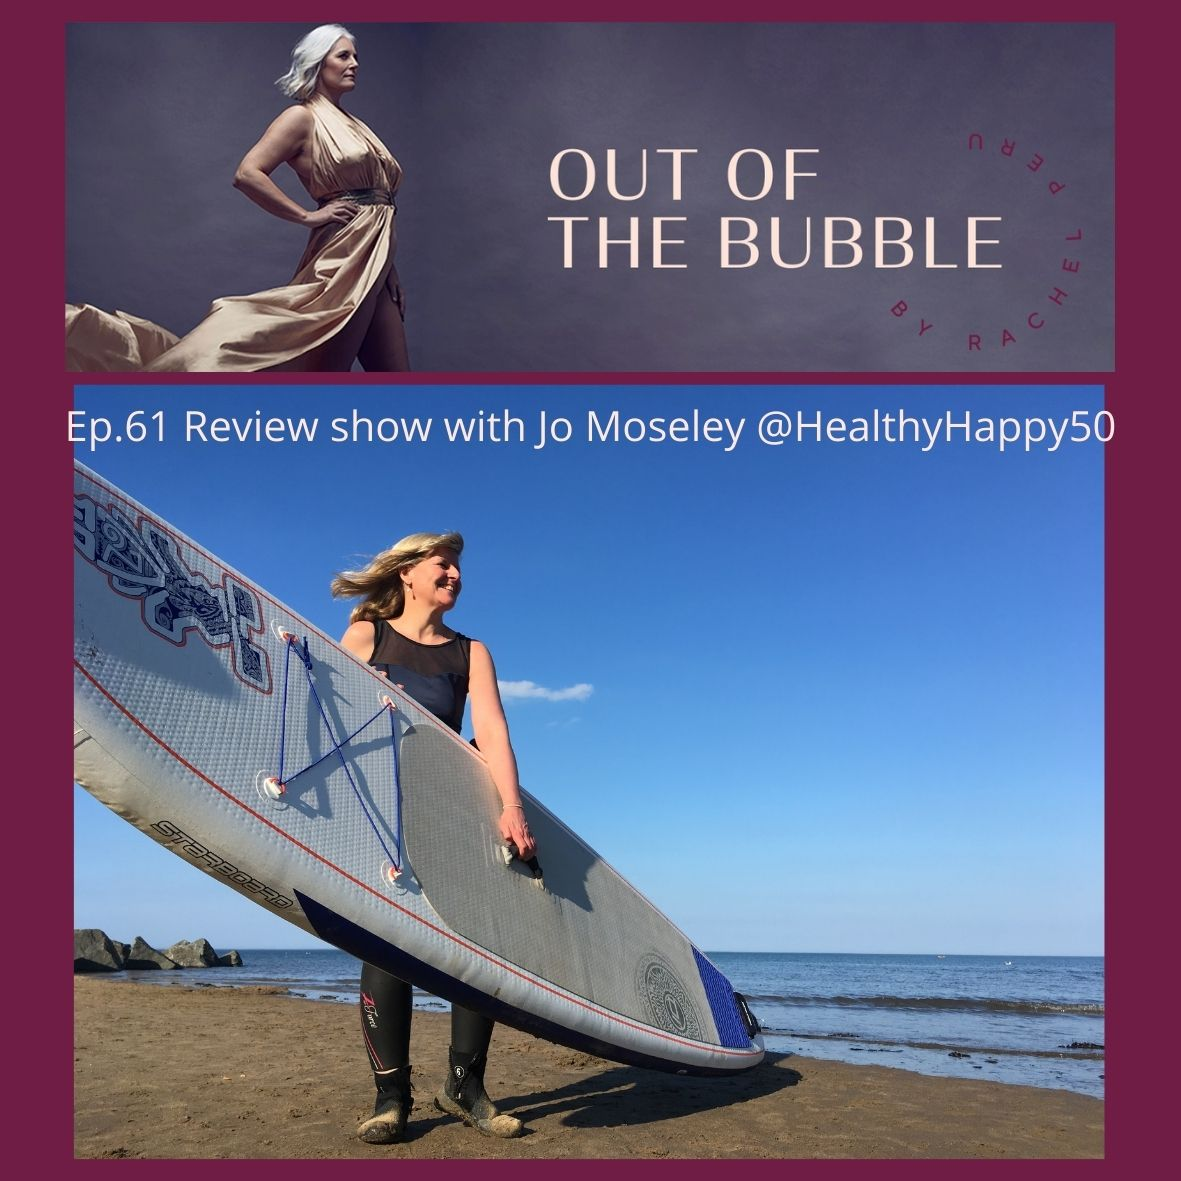 Ep.61- Out of the Bubble review show with midlife adventurer and Paddle boarder Jo Moseley @Healthyhappy50